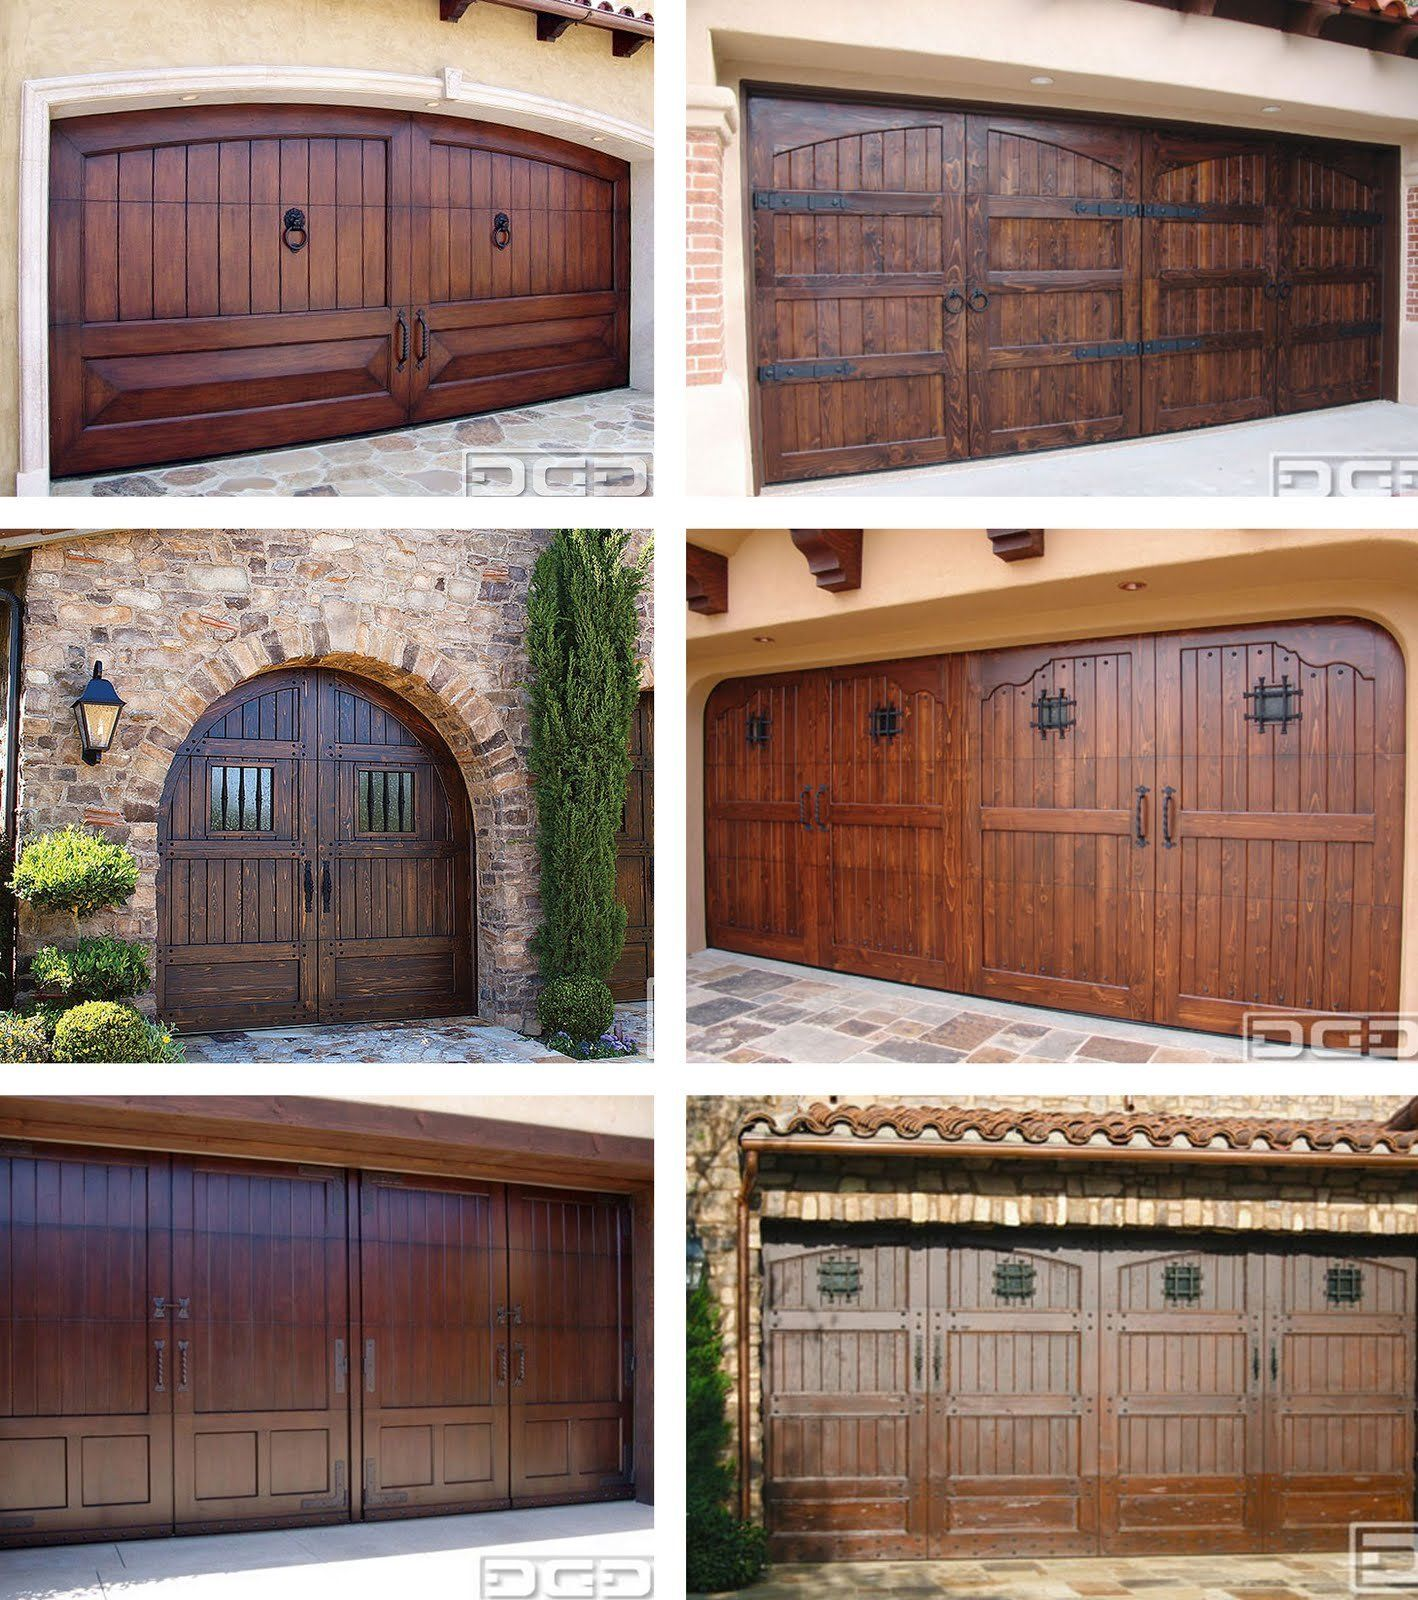 Delightful Costco Garage Door Cost 4 Garage Door Costco Amarr Garage Door Prices Costco Faux Wood Garage Door Garage Doors Wood Garage Doors